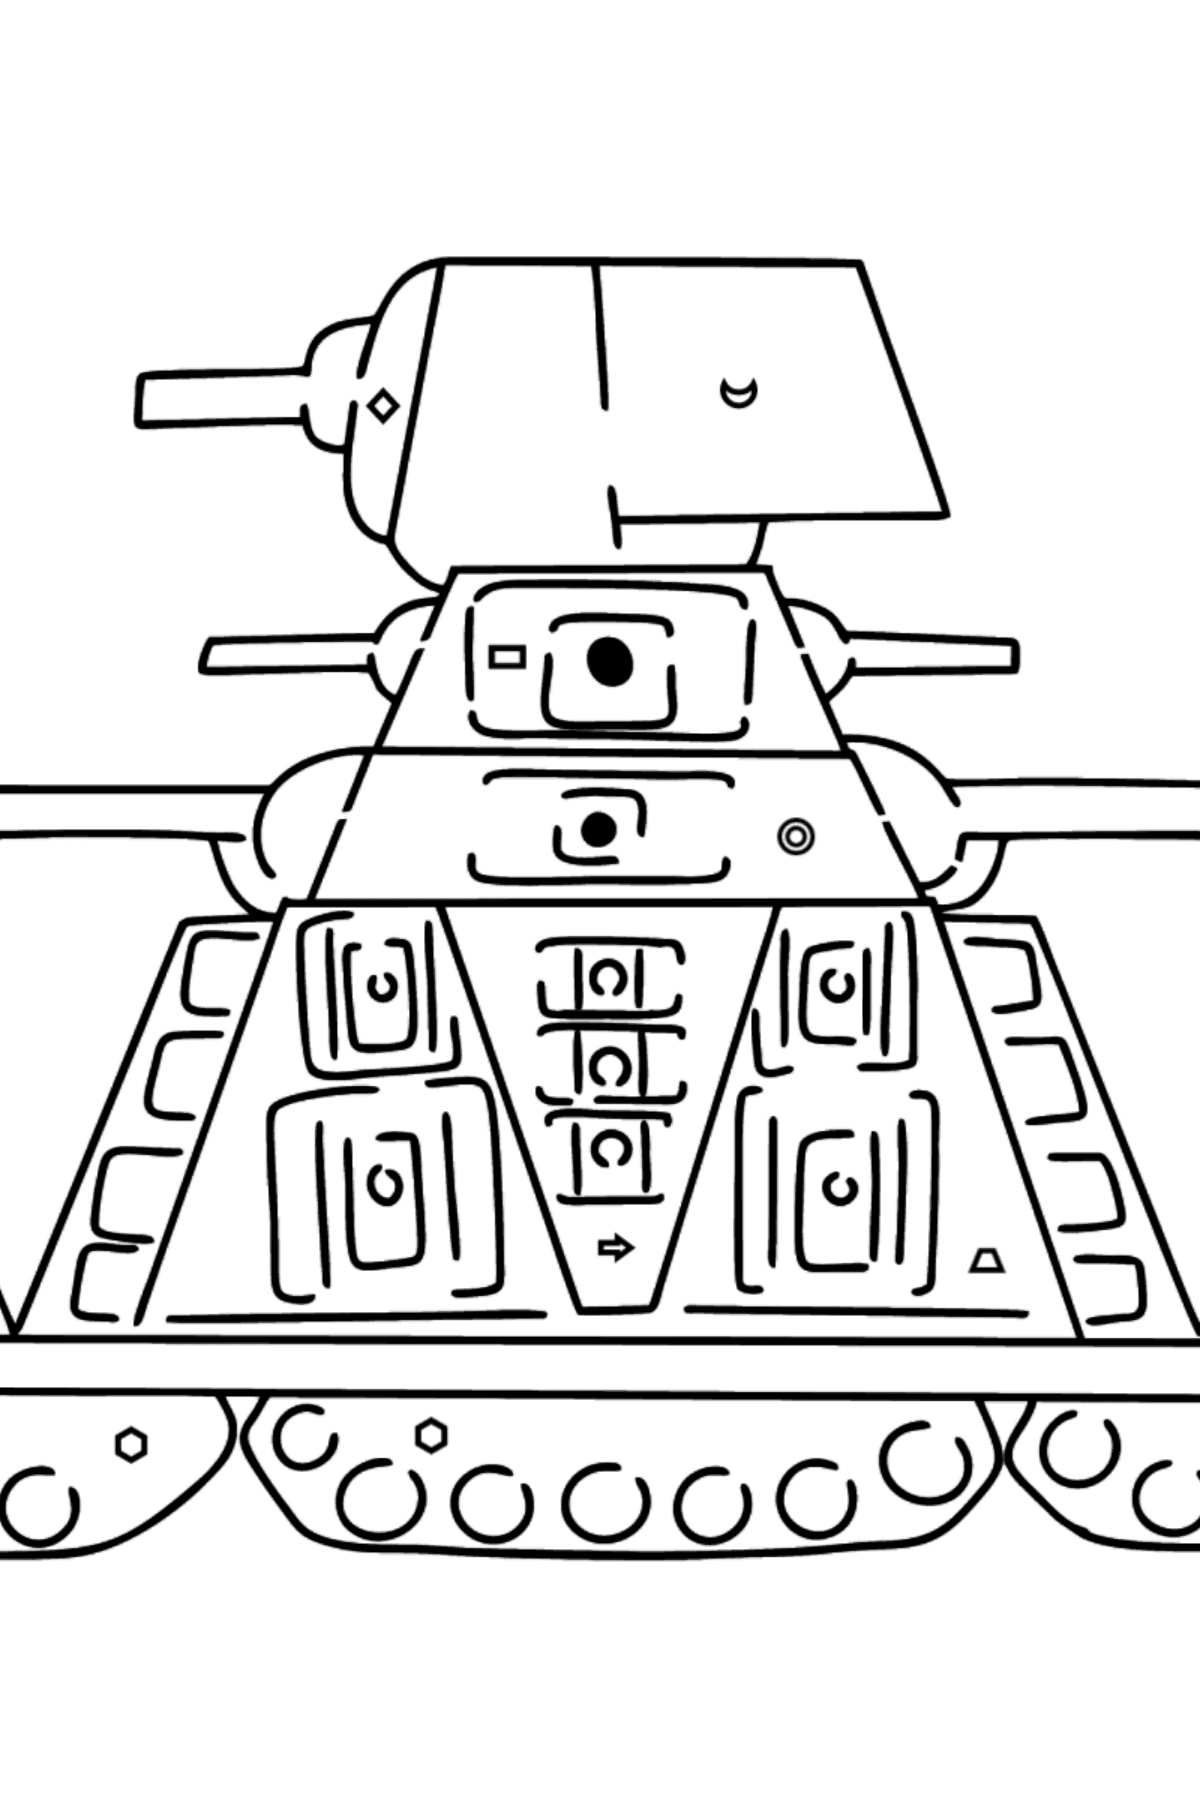 Tank KV 44 coloring page - Coloring by Geometric Shapes for Kids